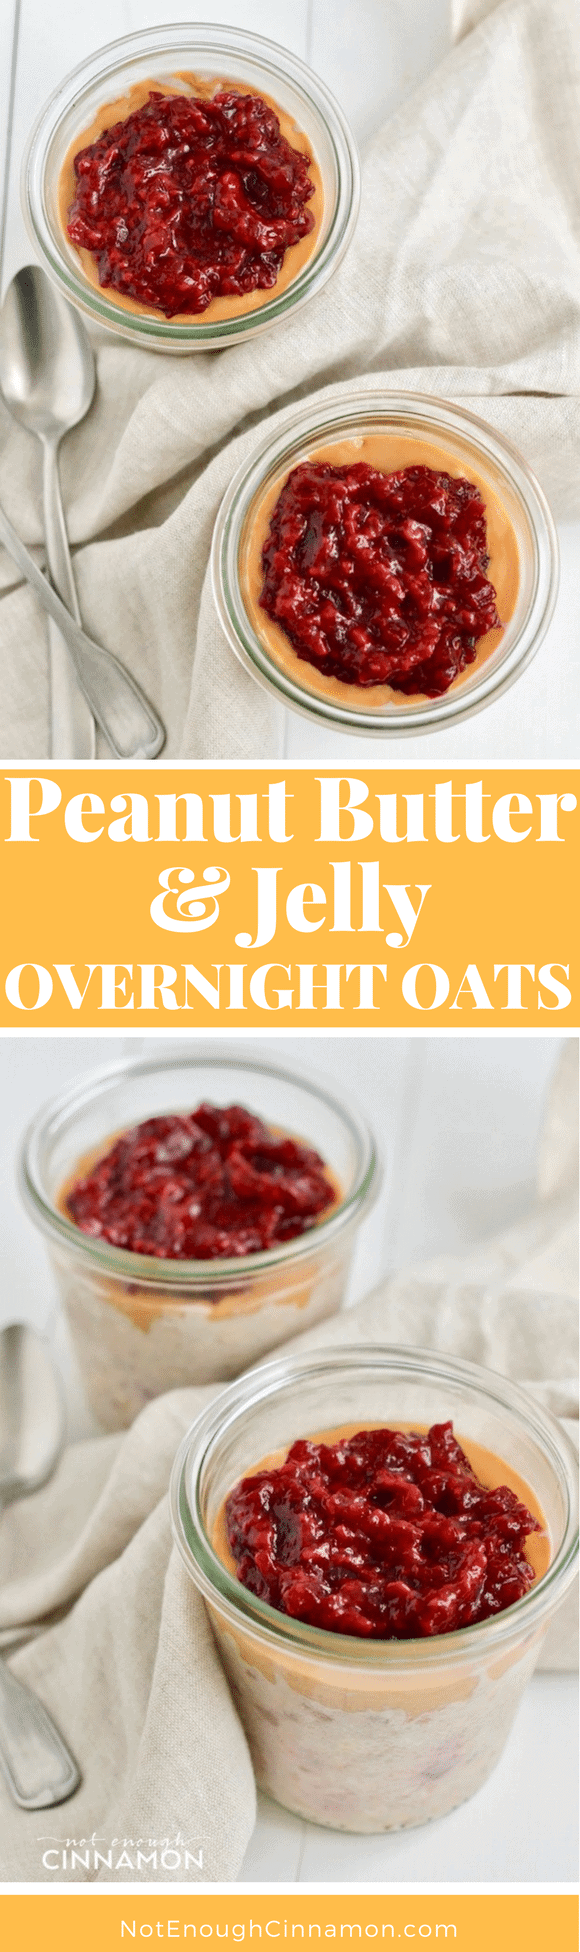 Make these healthy Peanut Butter Overnight Oats topped with a sweet and tart homemade quick raspberry jam using no refined sugar! A guilt-free breakfast dessert, your kids will love! #overnightoats, #breakfastideas, #realfood, #makeahead, #mealprep, #pbandj